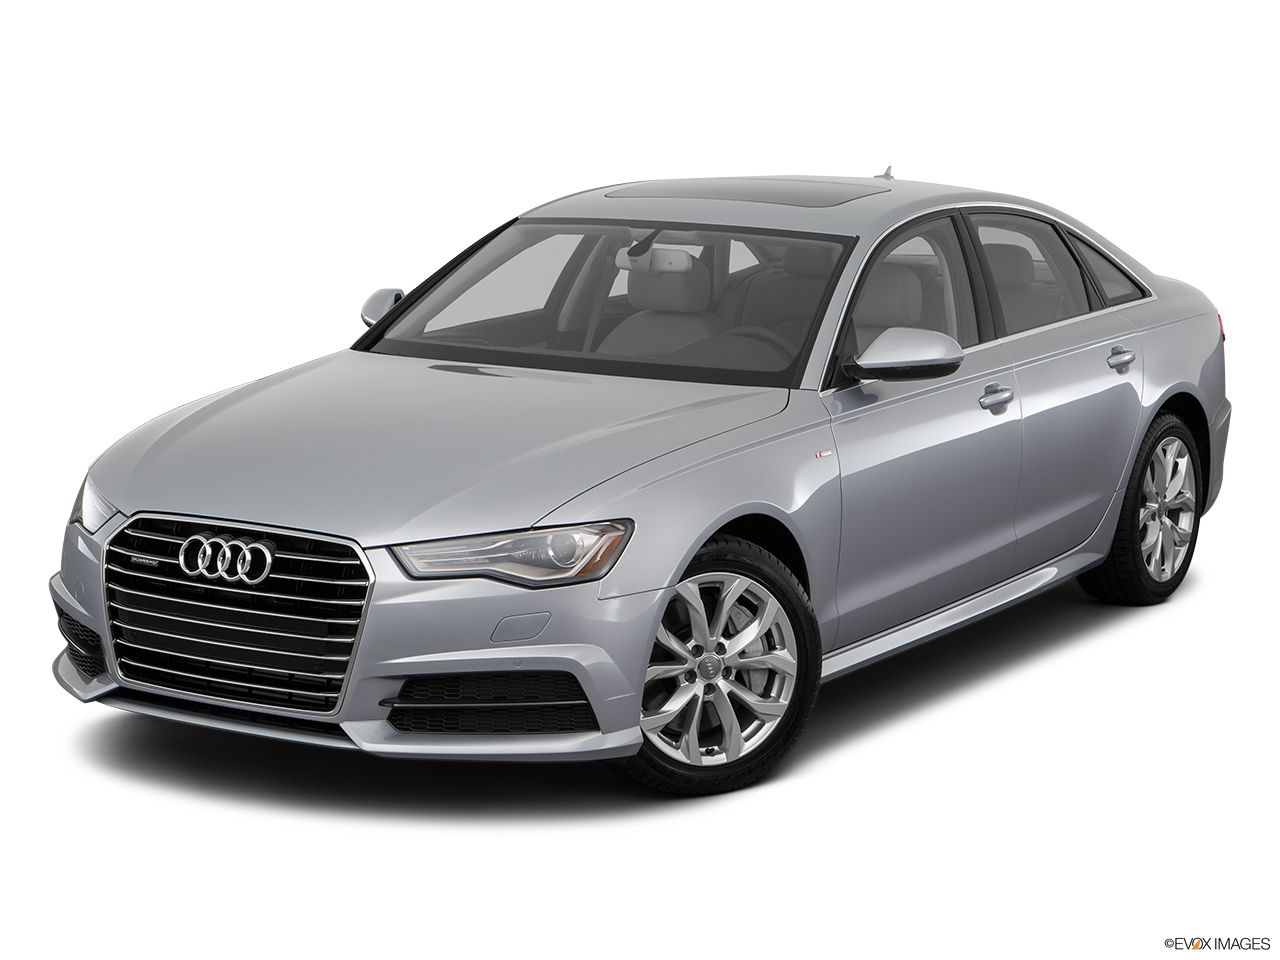 Audi A6 2018 35 TFSI 190 HP In UAE: New Car Prices, Specs